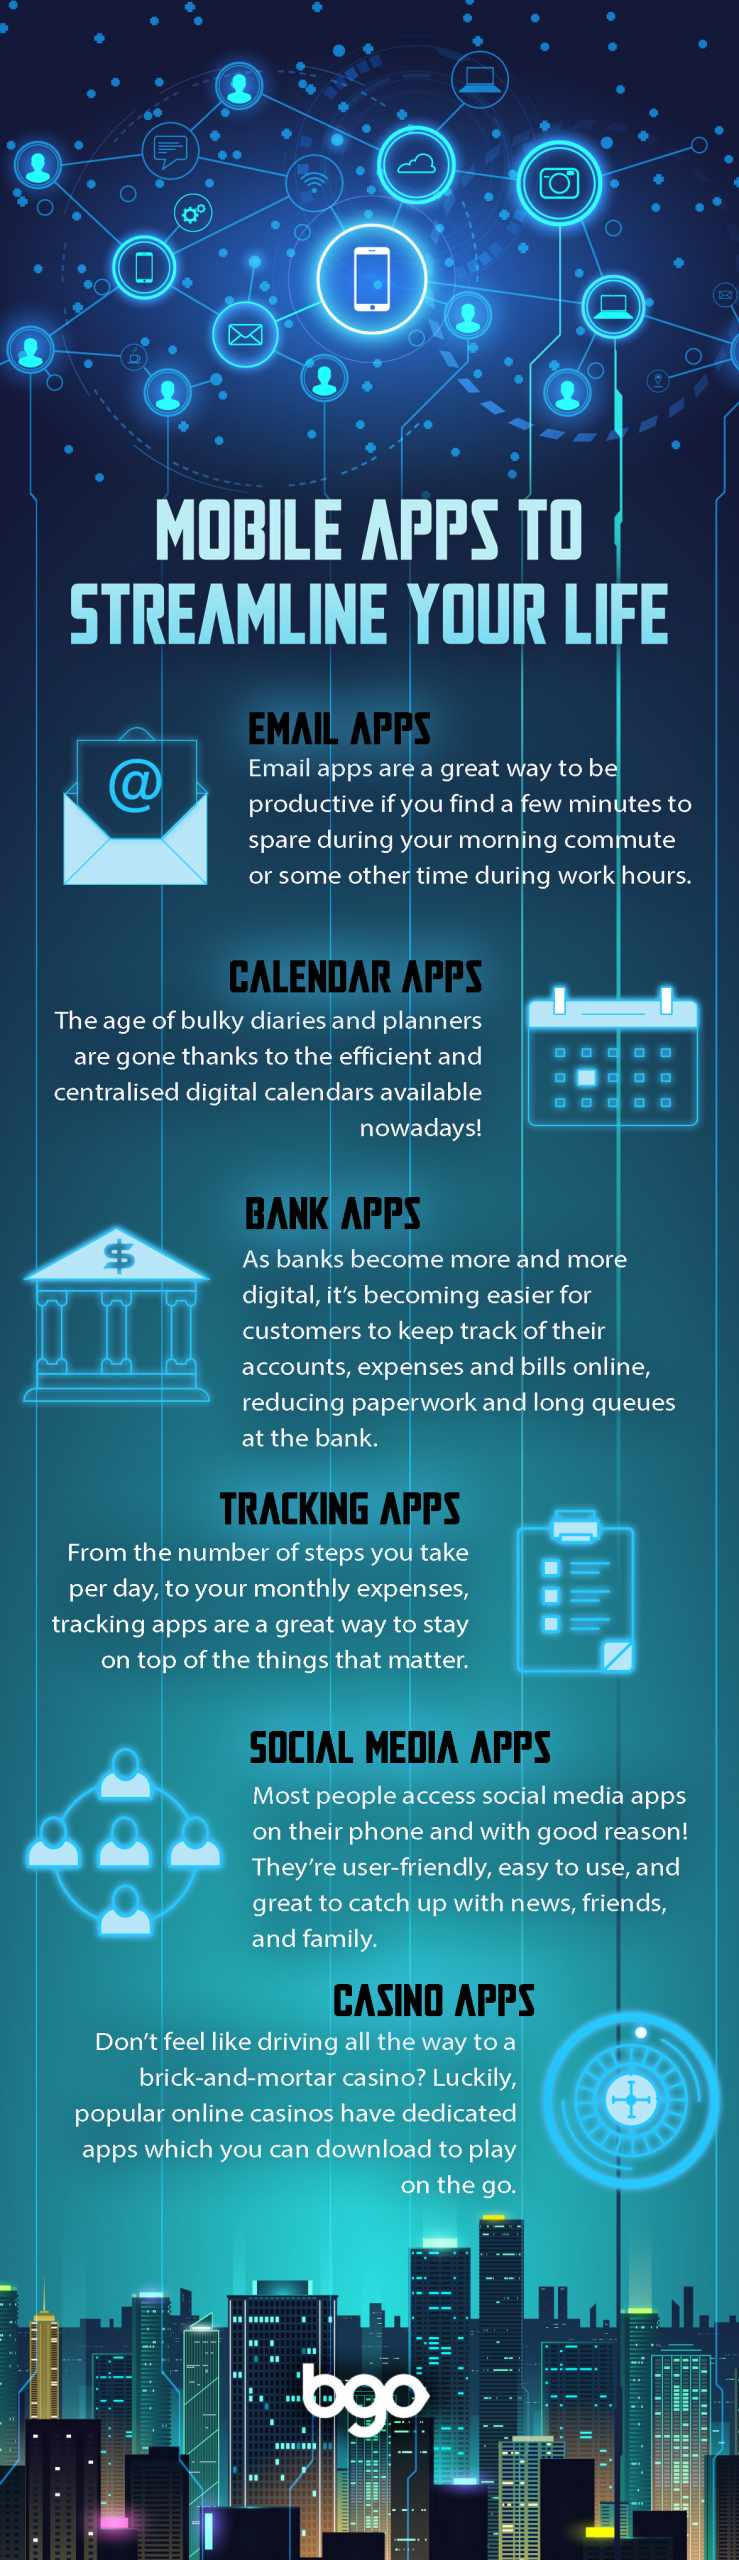 6 mobile apps to streamline your life